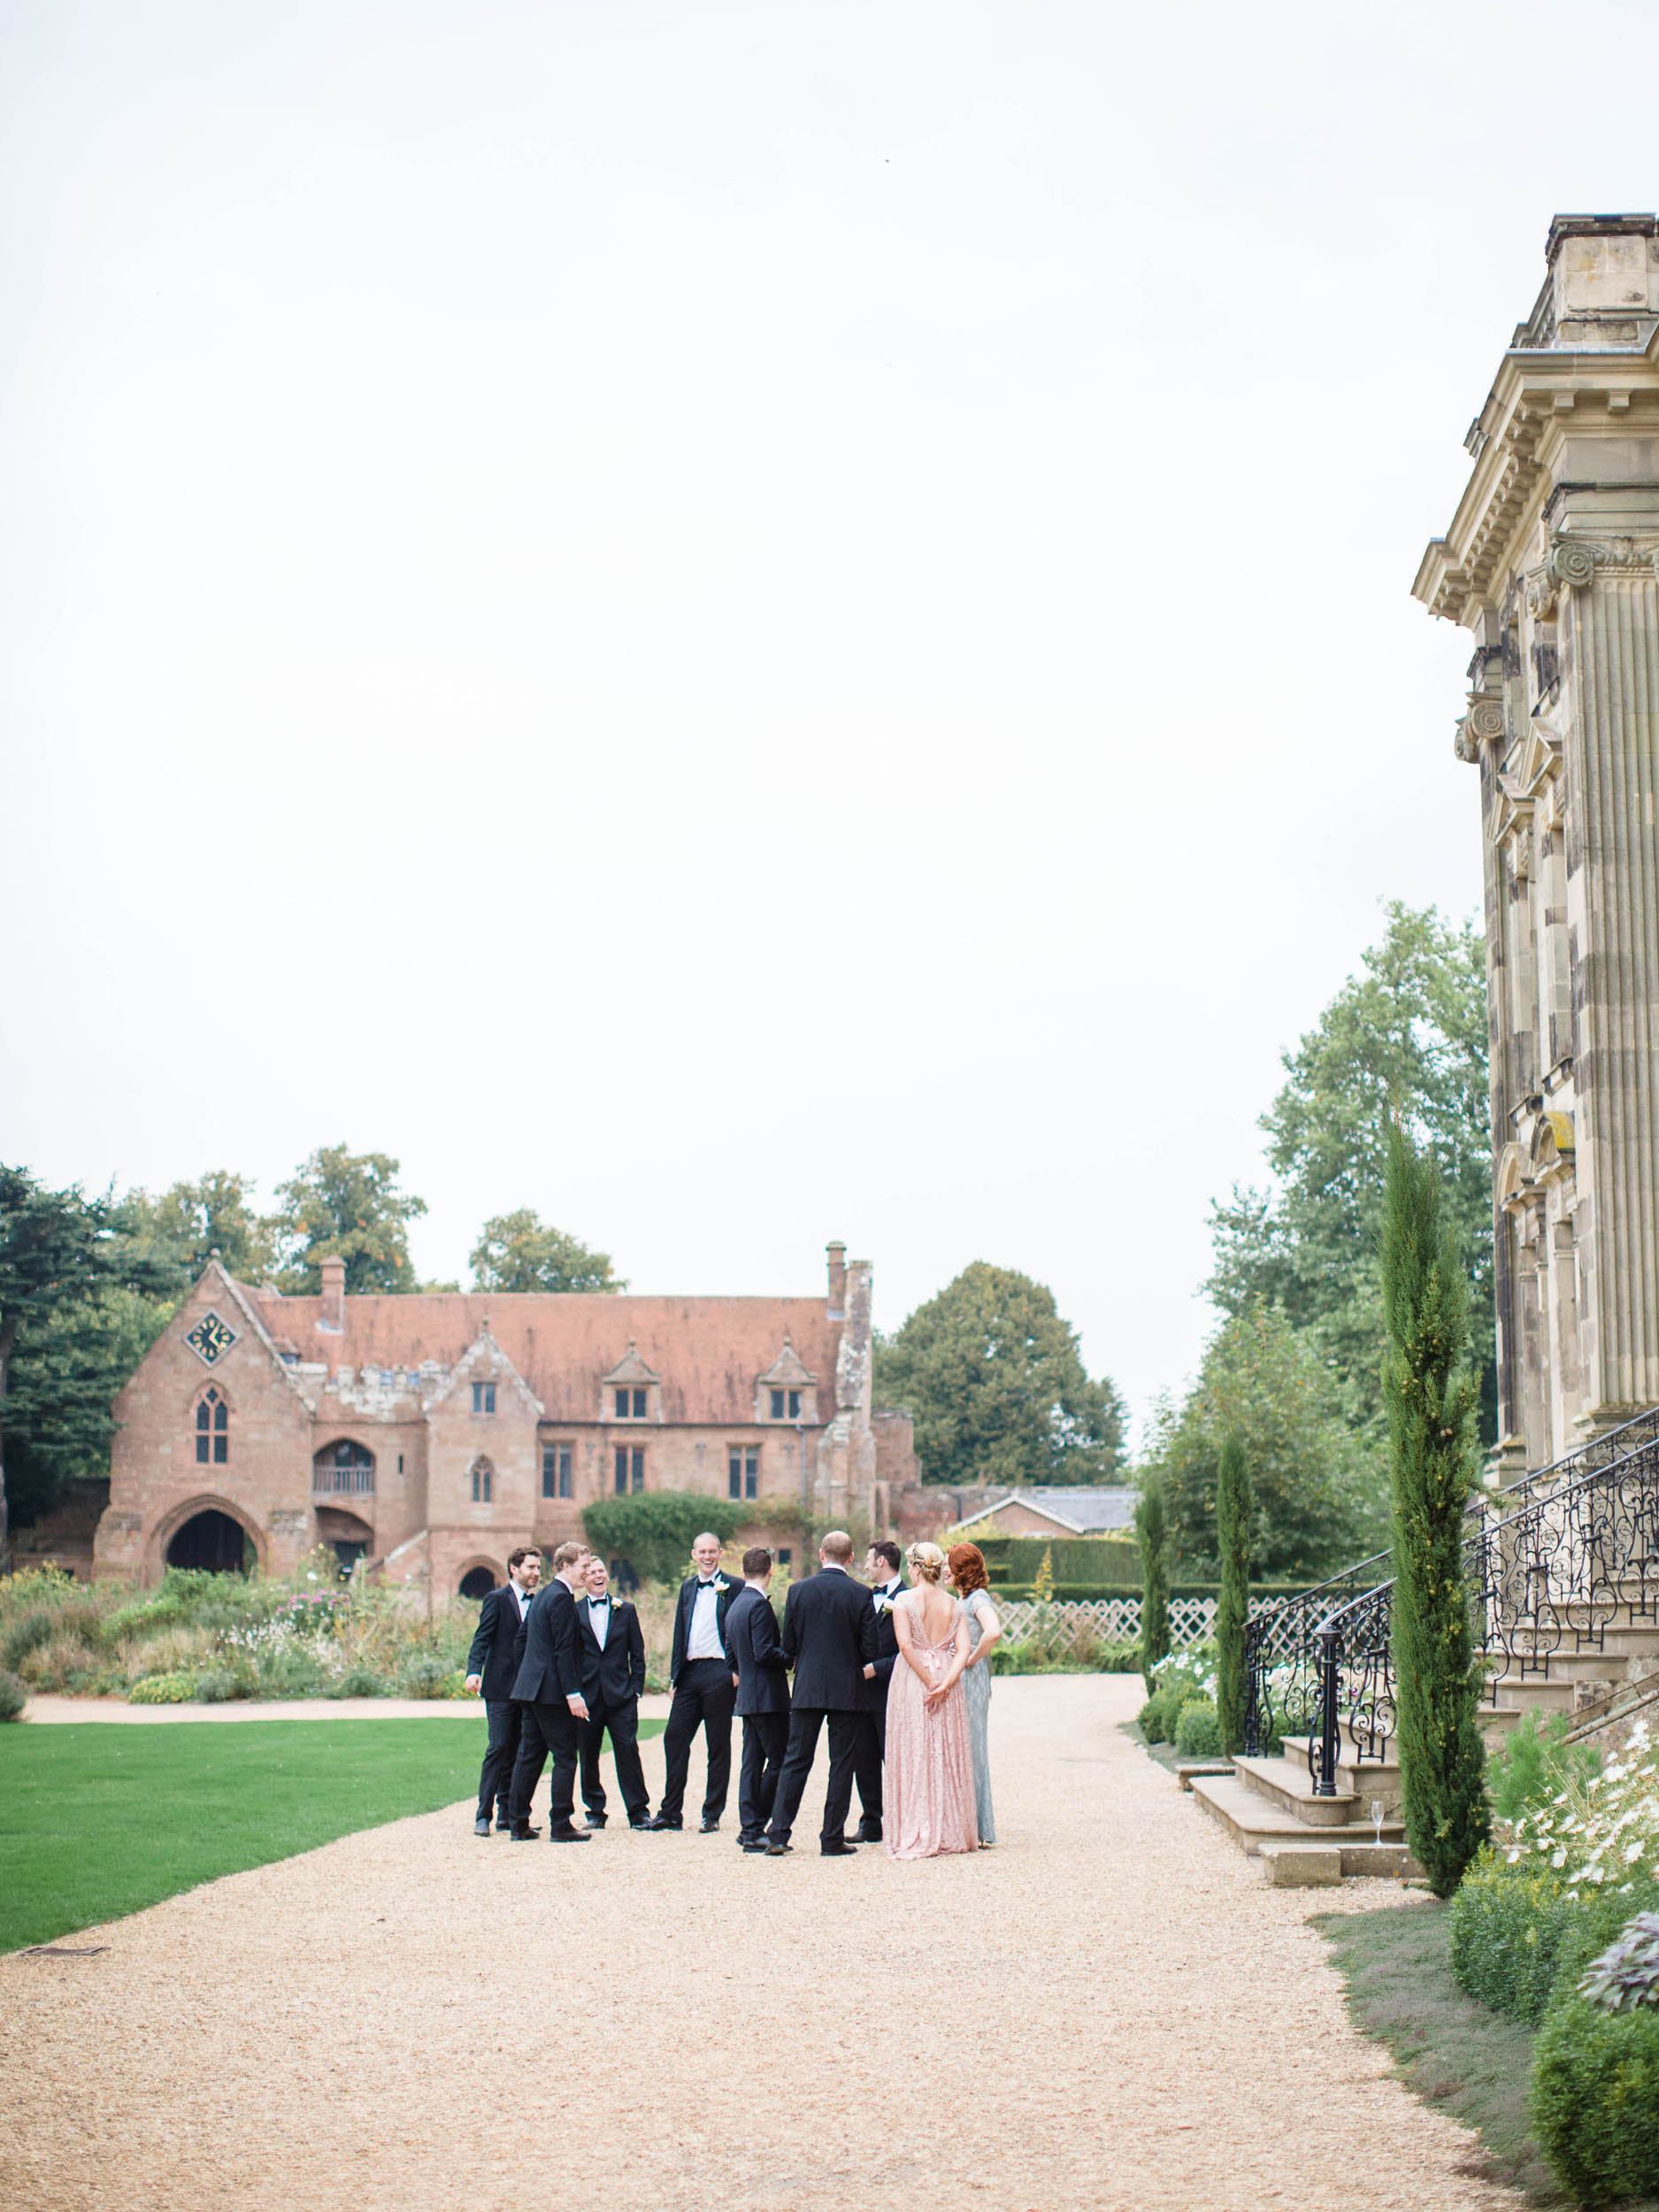 Amy O'Boyle Photography- Destination & UK Fine Art Film Wedding Photographer- Stoneleigh Abbey Wedding-53.jpg